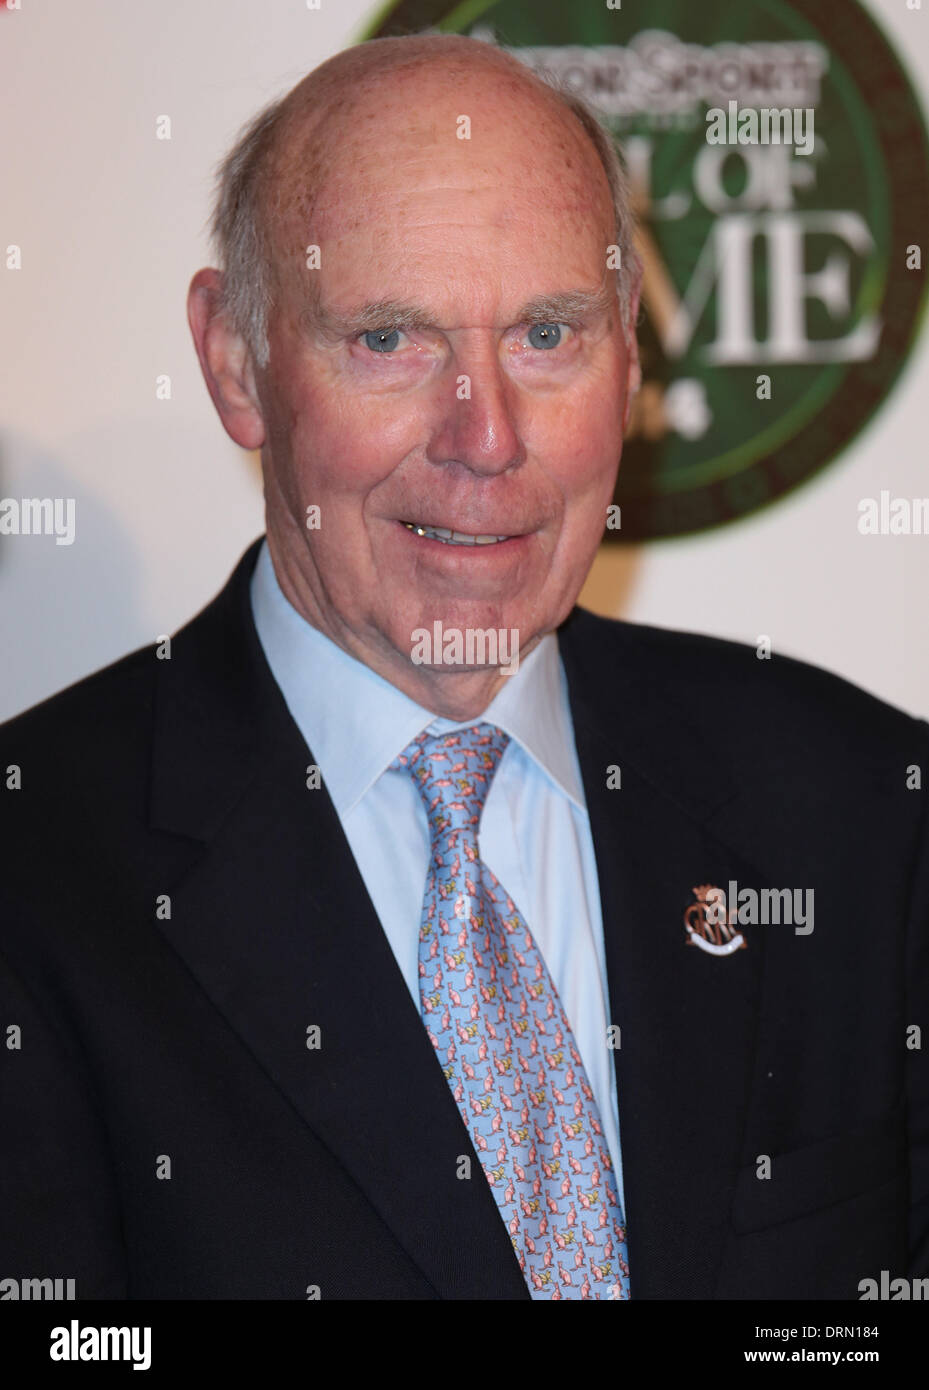 London, UK, 29th January 2014 Former British racing driver, Richard Attwood, attends MotorSport Magazine Hall of Fame award ceremony at The Royal Opera House, Covent Garden, London, UK Credit:  MRP/Alamy Live News - Stock Image